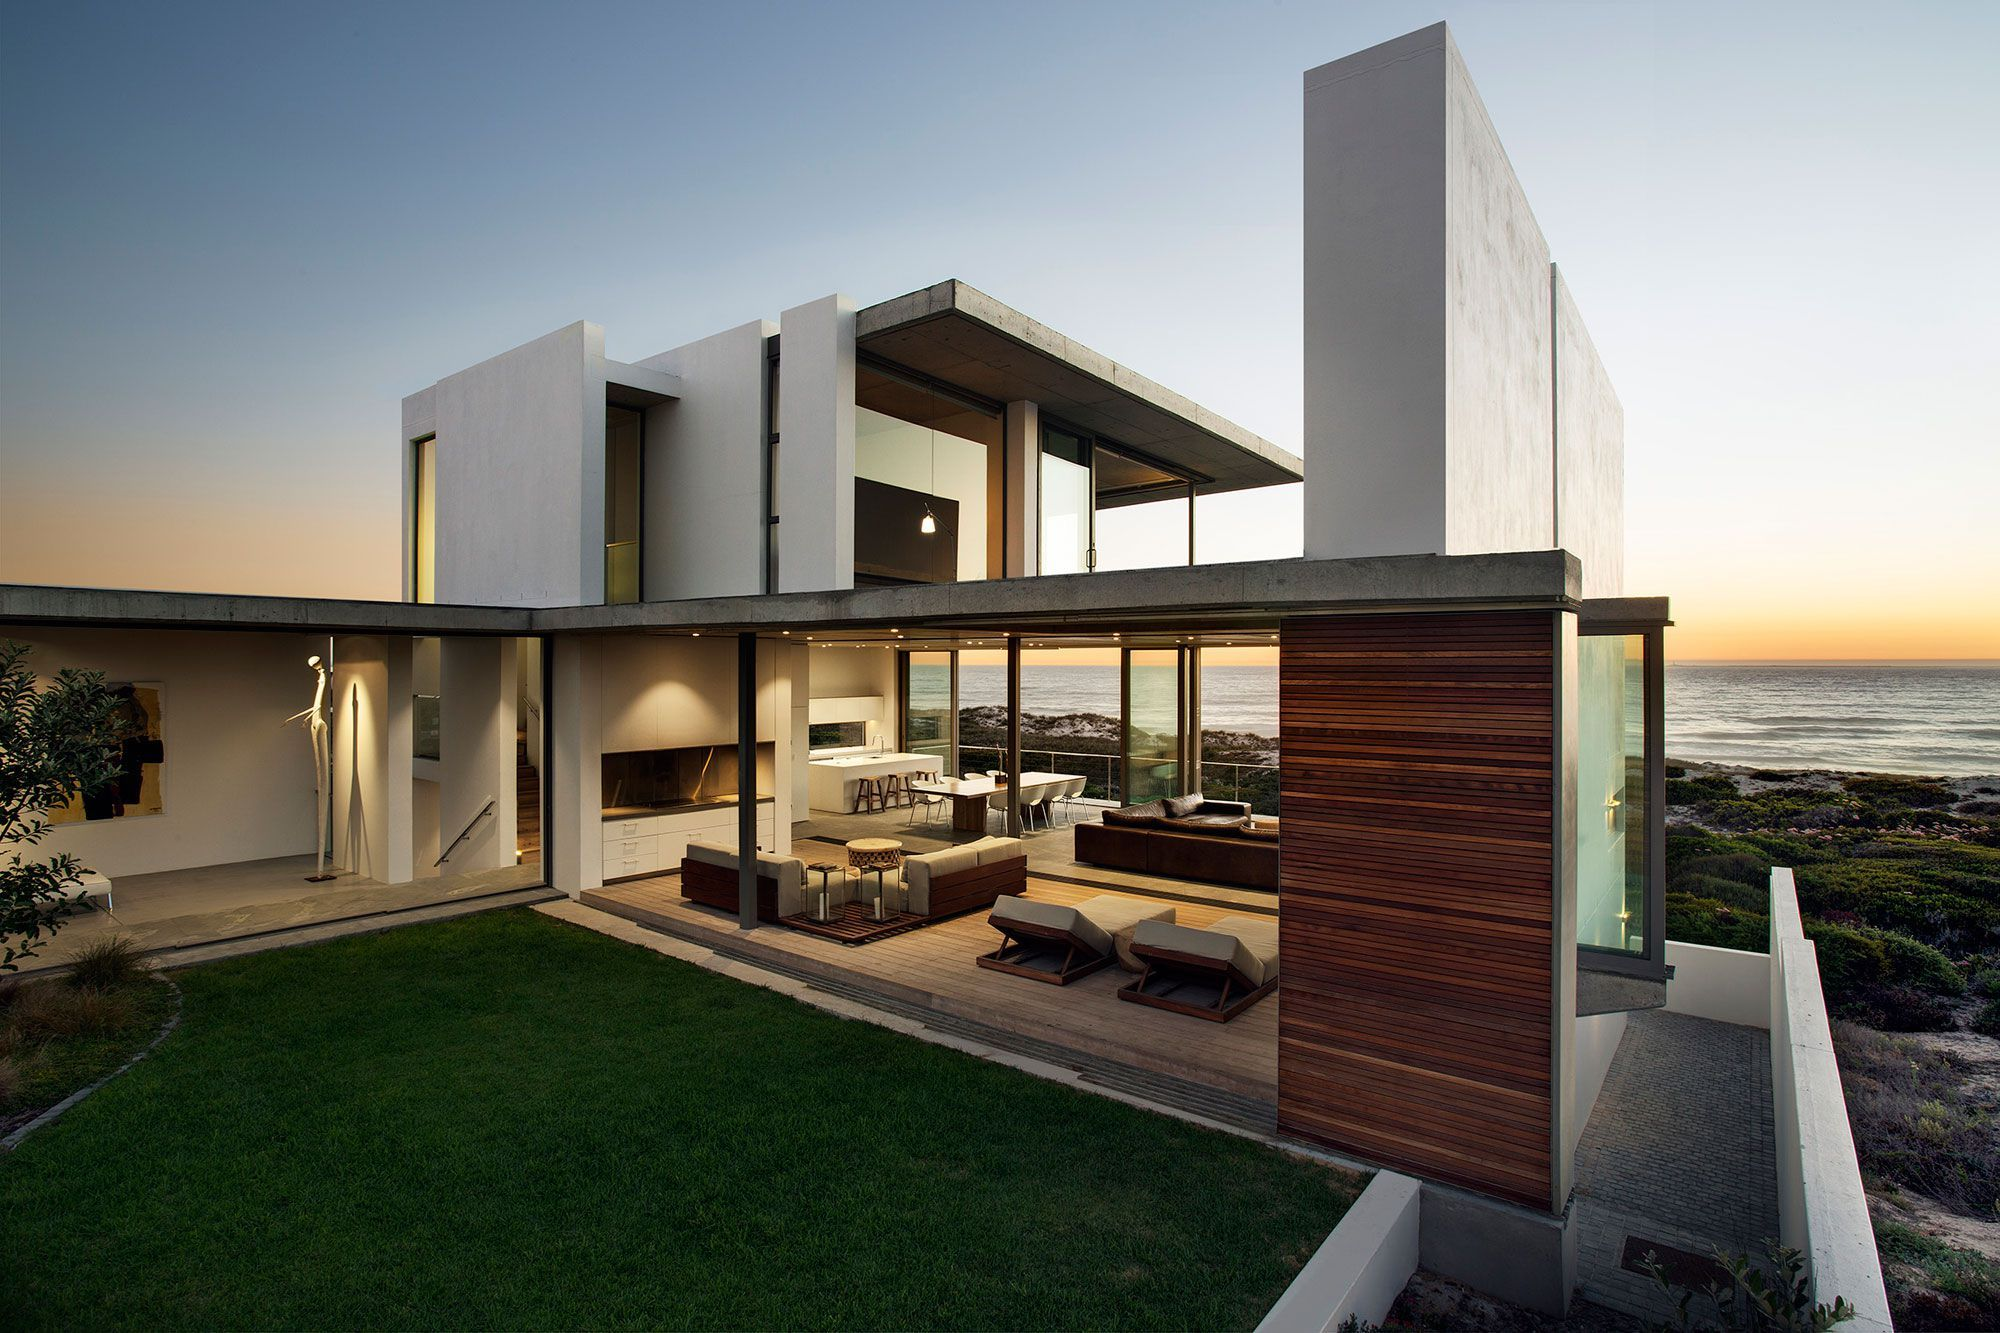 Pearl Bay Residence by Gavin Maddock Design Studio #capetown #southafrica